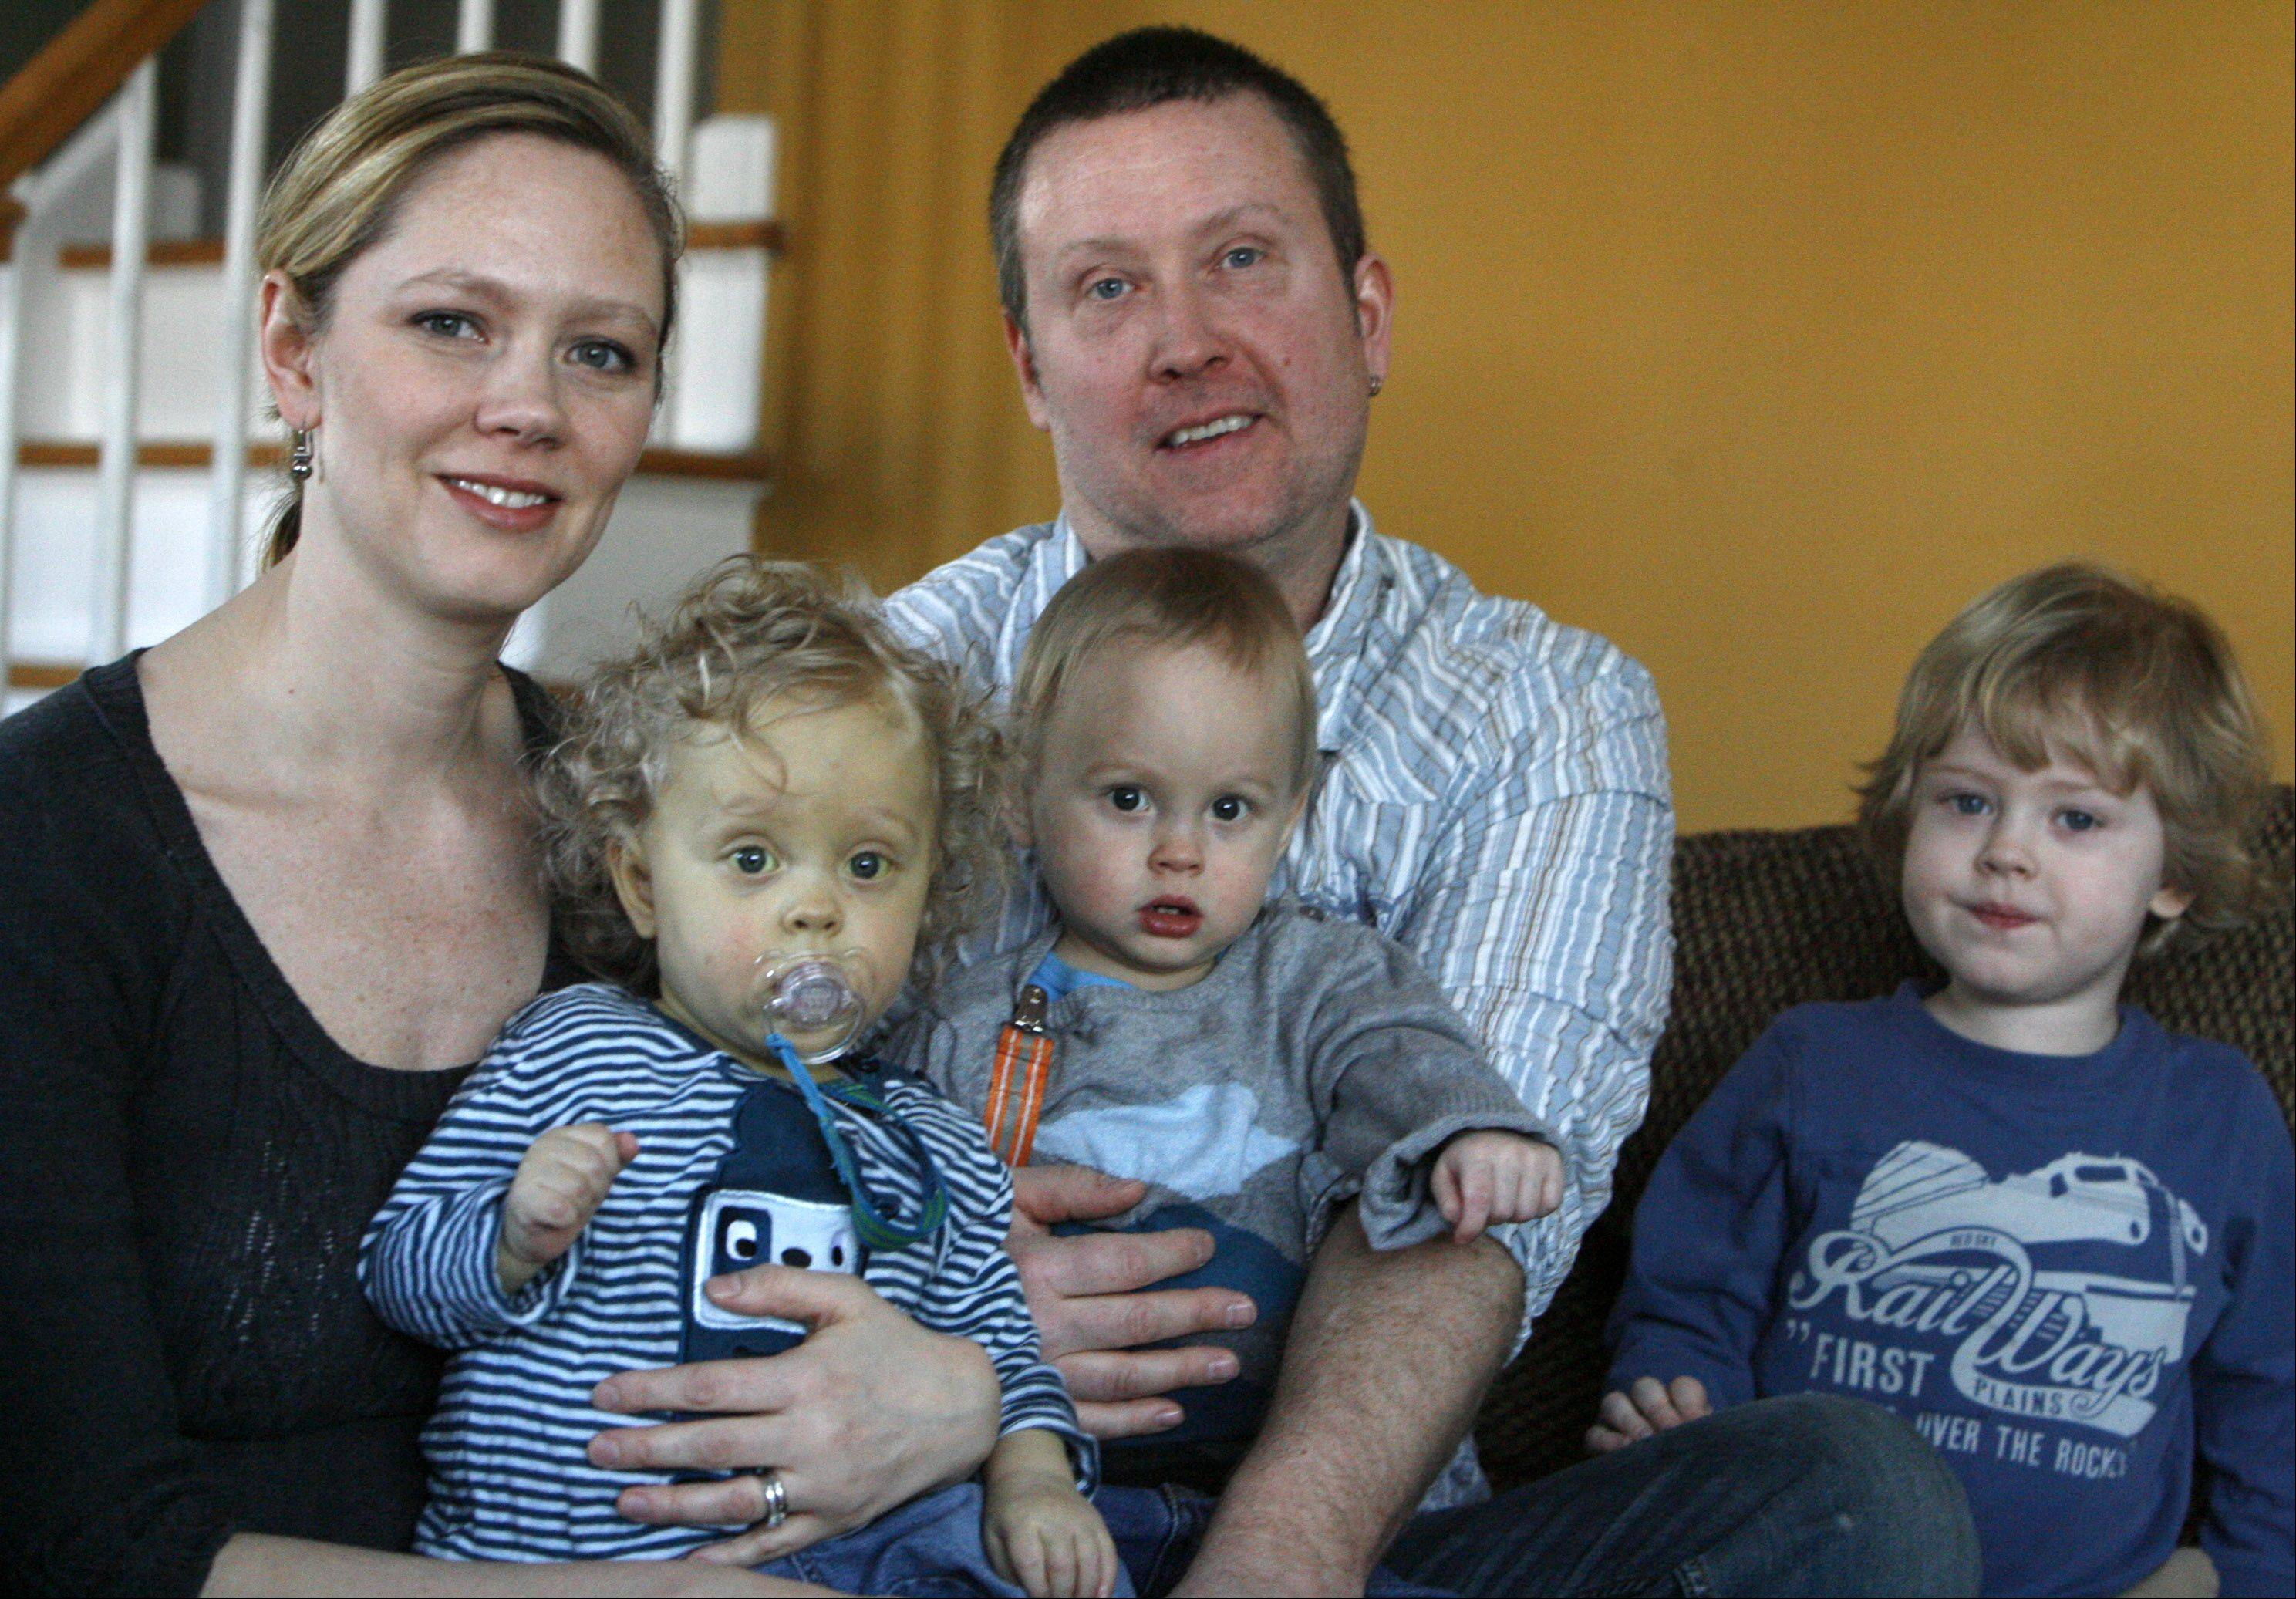 Then 17-month-old twins Jake, left, and Luke with their parents Robyn and Scott Swanson and their brother Gunnar in 2010.